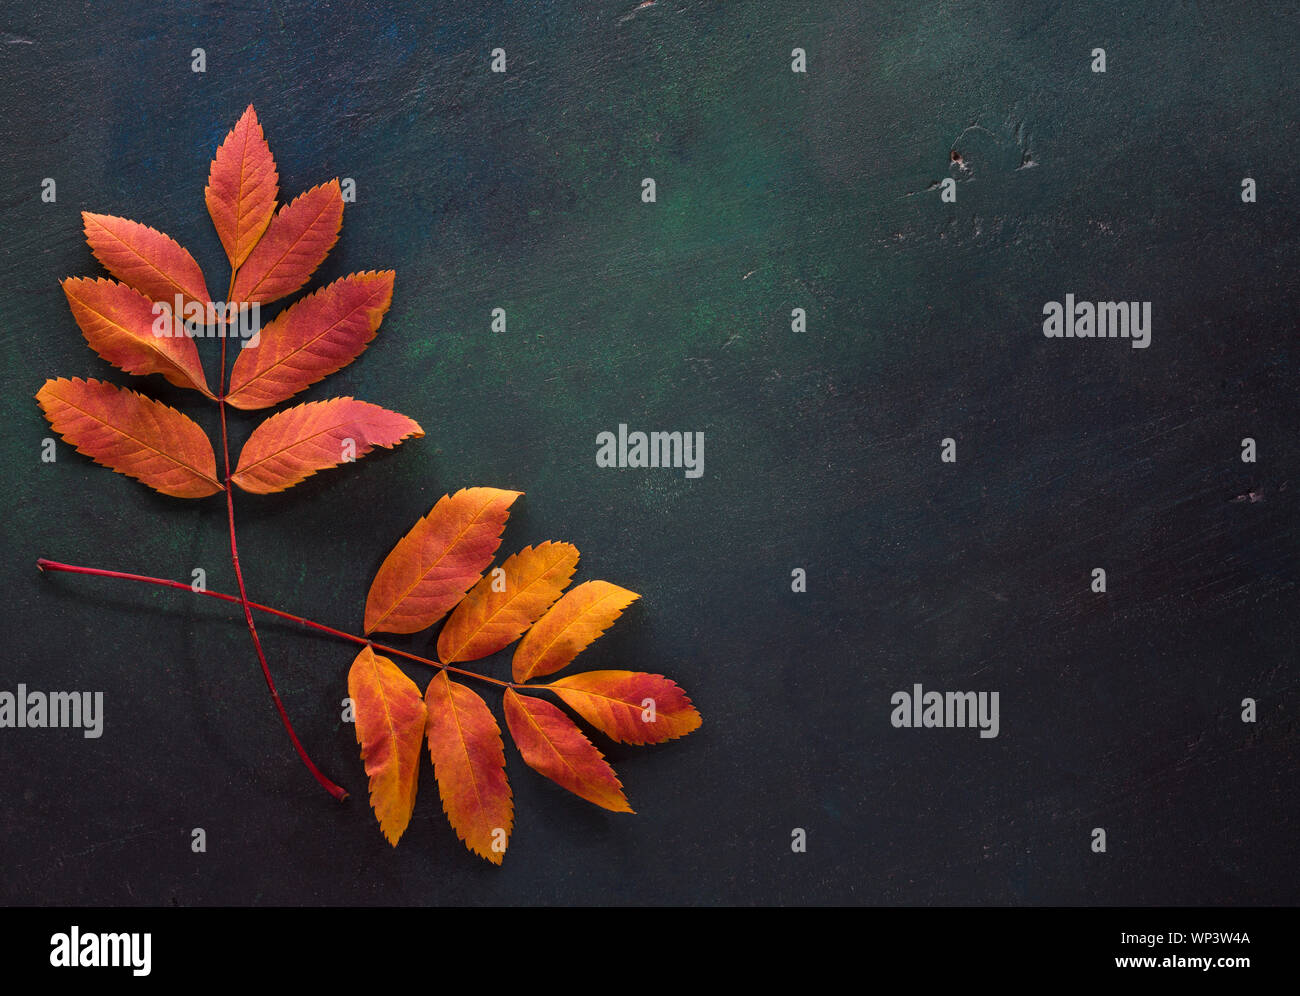 Two colorful autumn leaves of Mountain Ashes on a dark green painted wooden background. Stock Photo